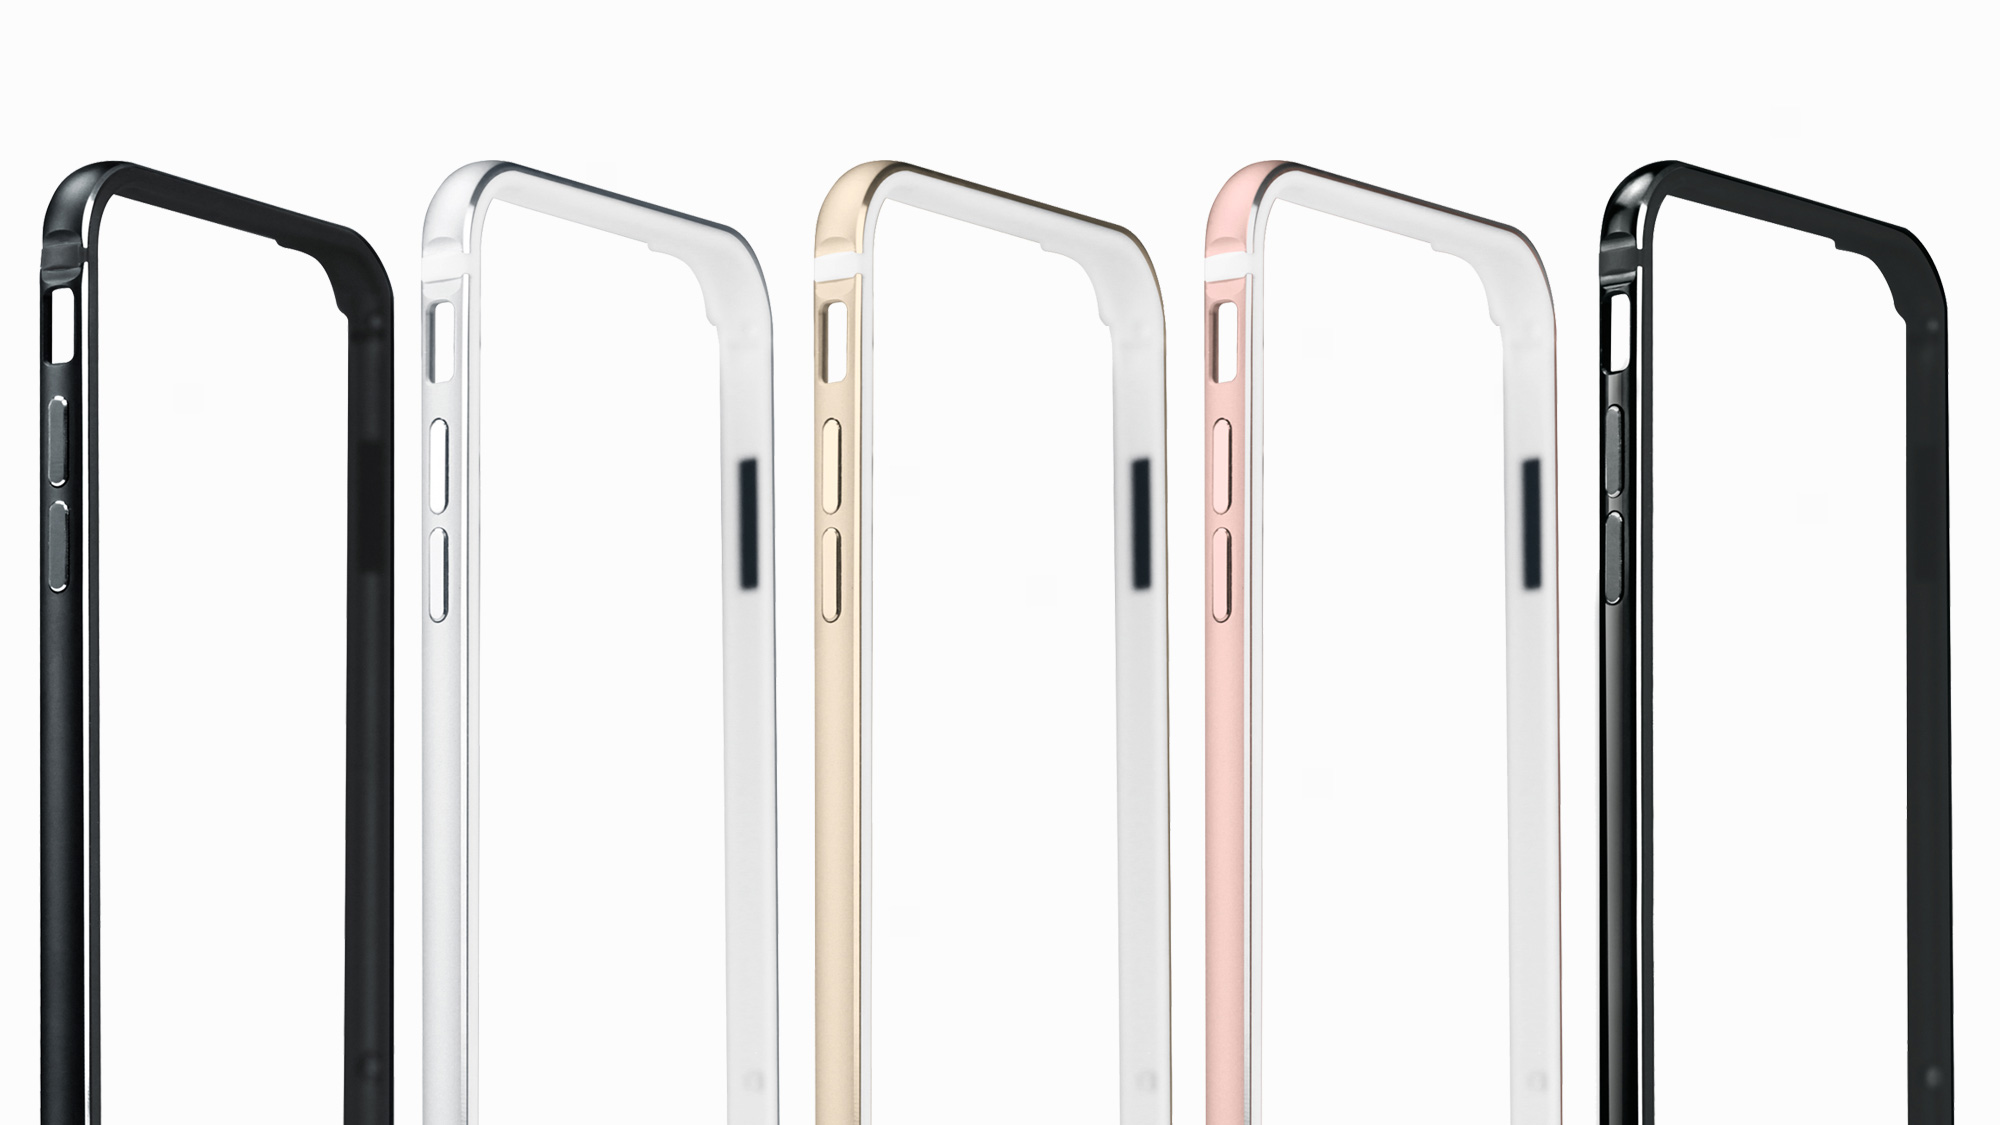 Frame X For Iphone 7 Tunewear Apple 6 Mplw Hybrid Film 5 Colors To Match Your New